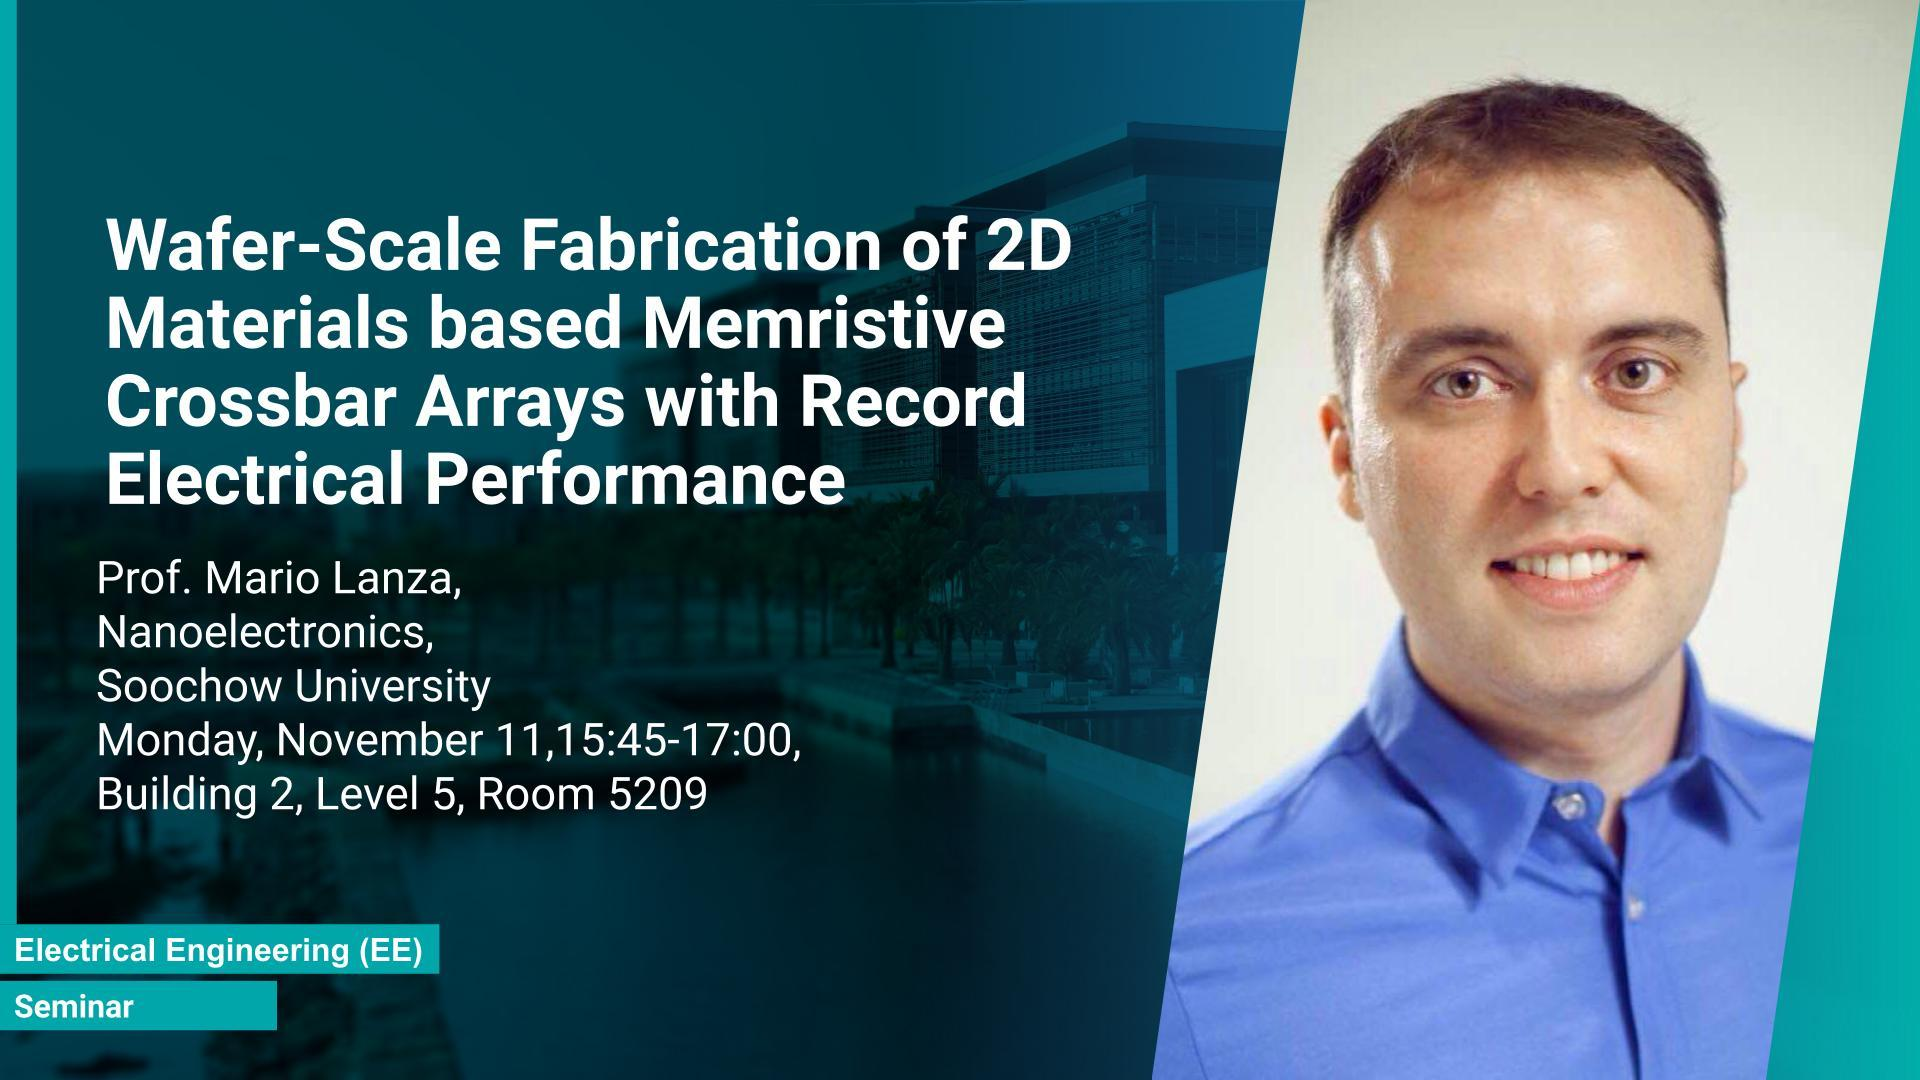 KAUST CEMSE EE Seminar Mario Lanza wafer scale fabrication memristive crossbar arrays with record performance